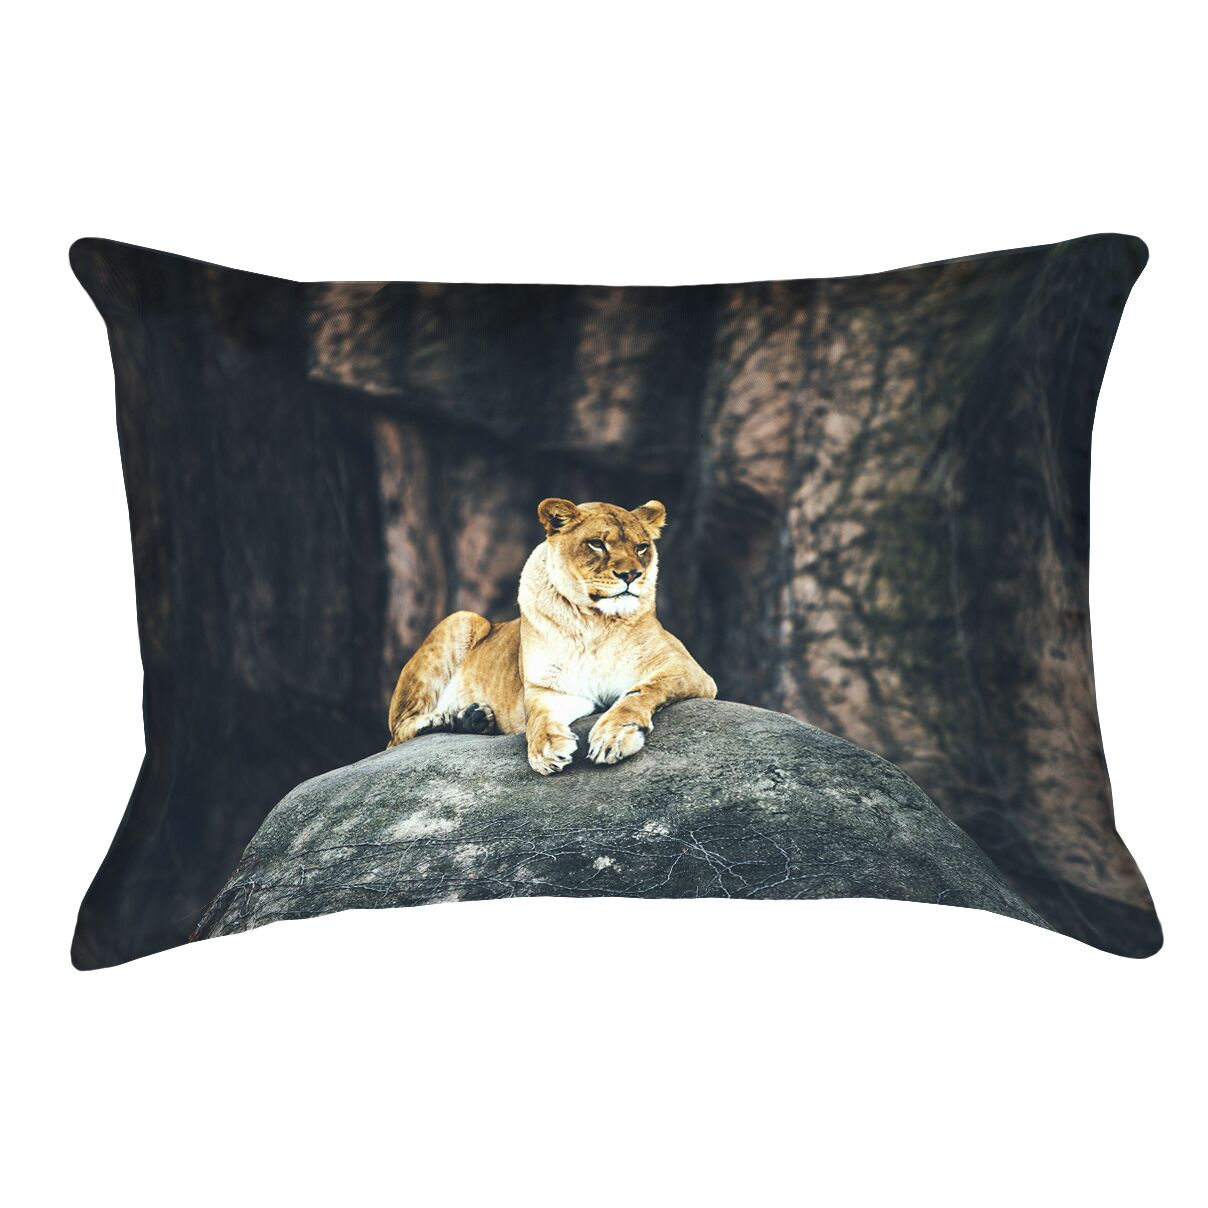 Thatcher Lioness Lumbar Pillow with Concealed Zipper